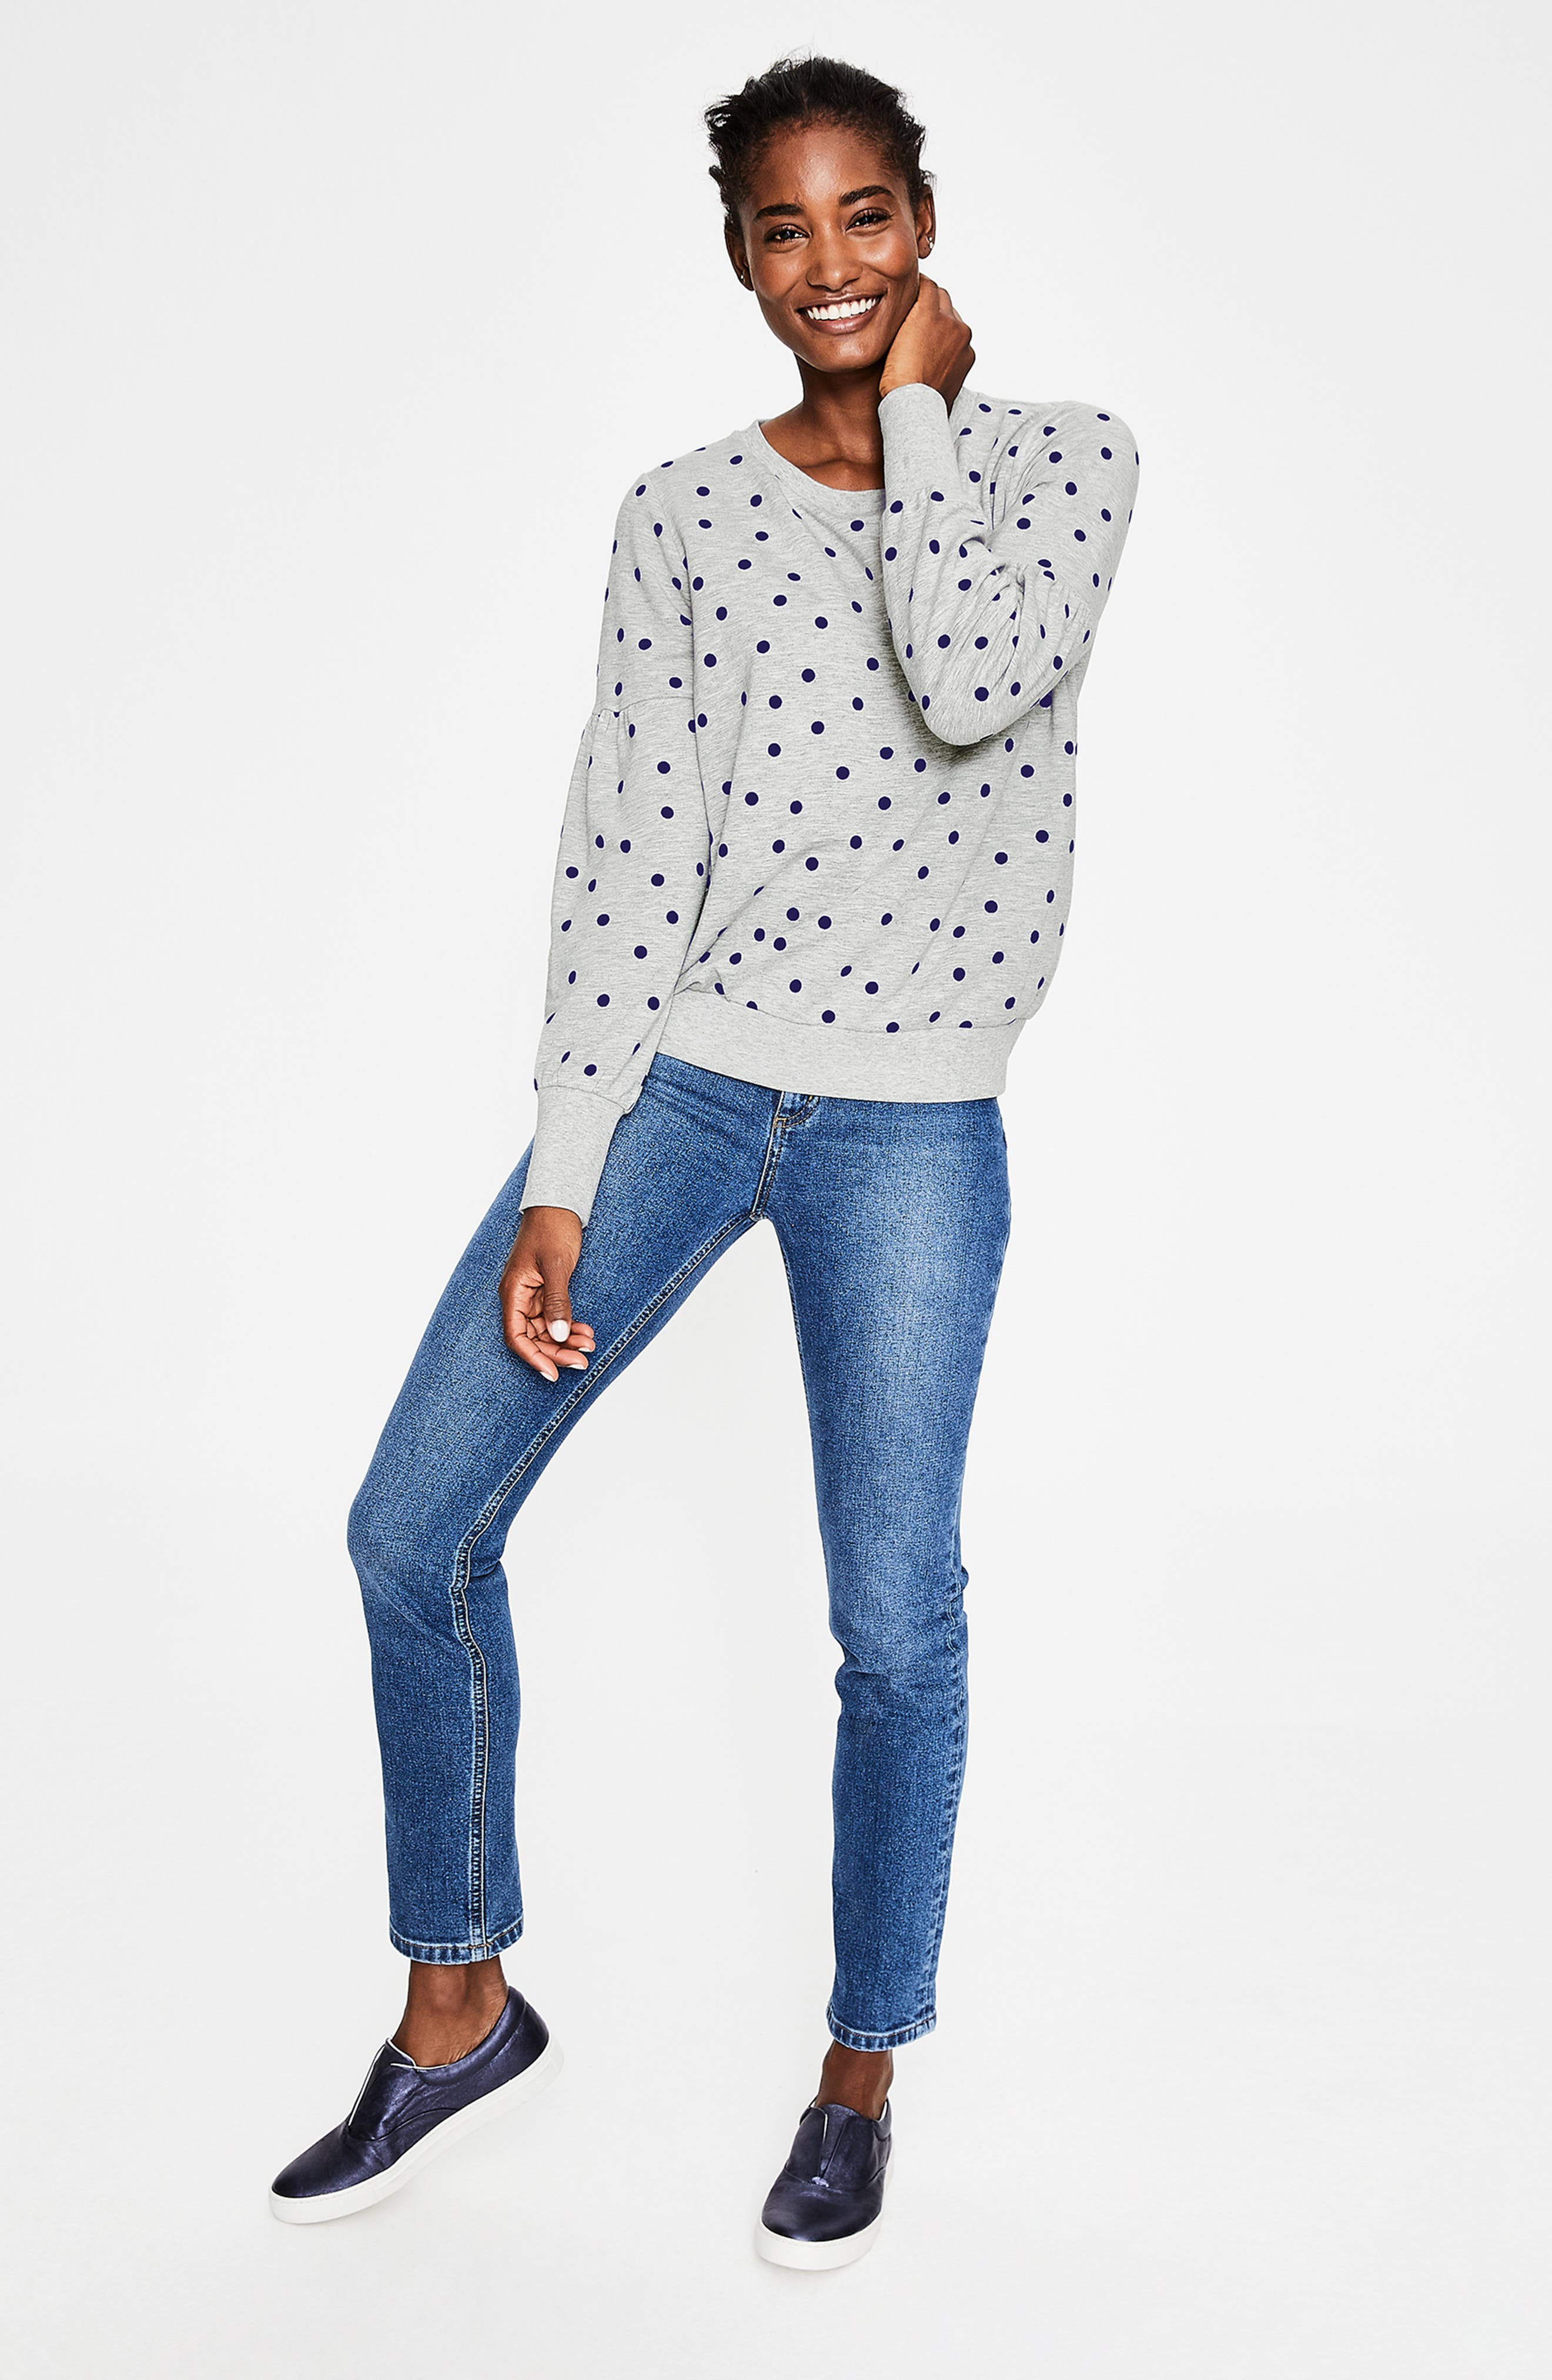 Renee Sweatshirt,                             Alternate thumbnail 6, color,                             GREY MARL FLOCKED SPOT